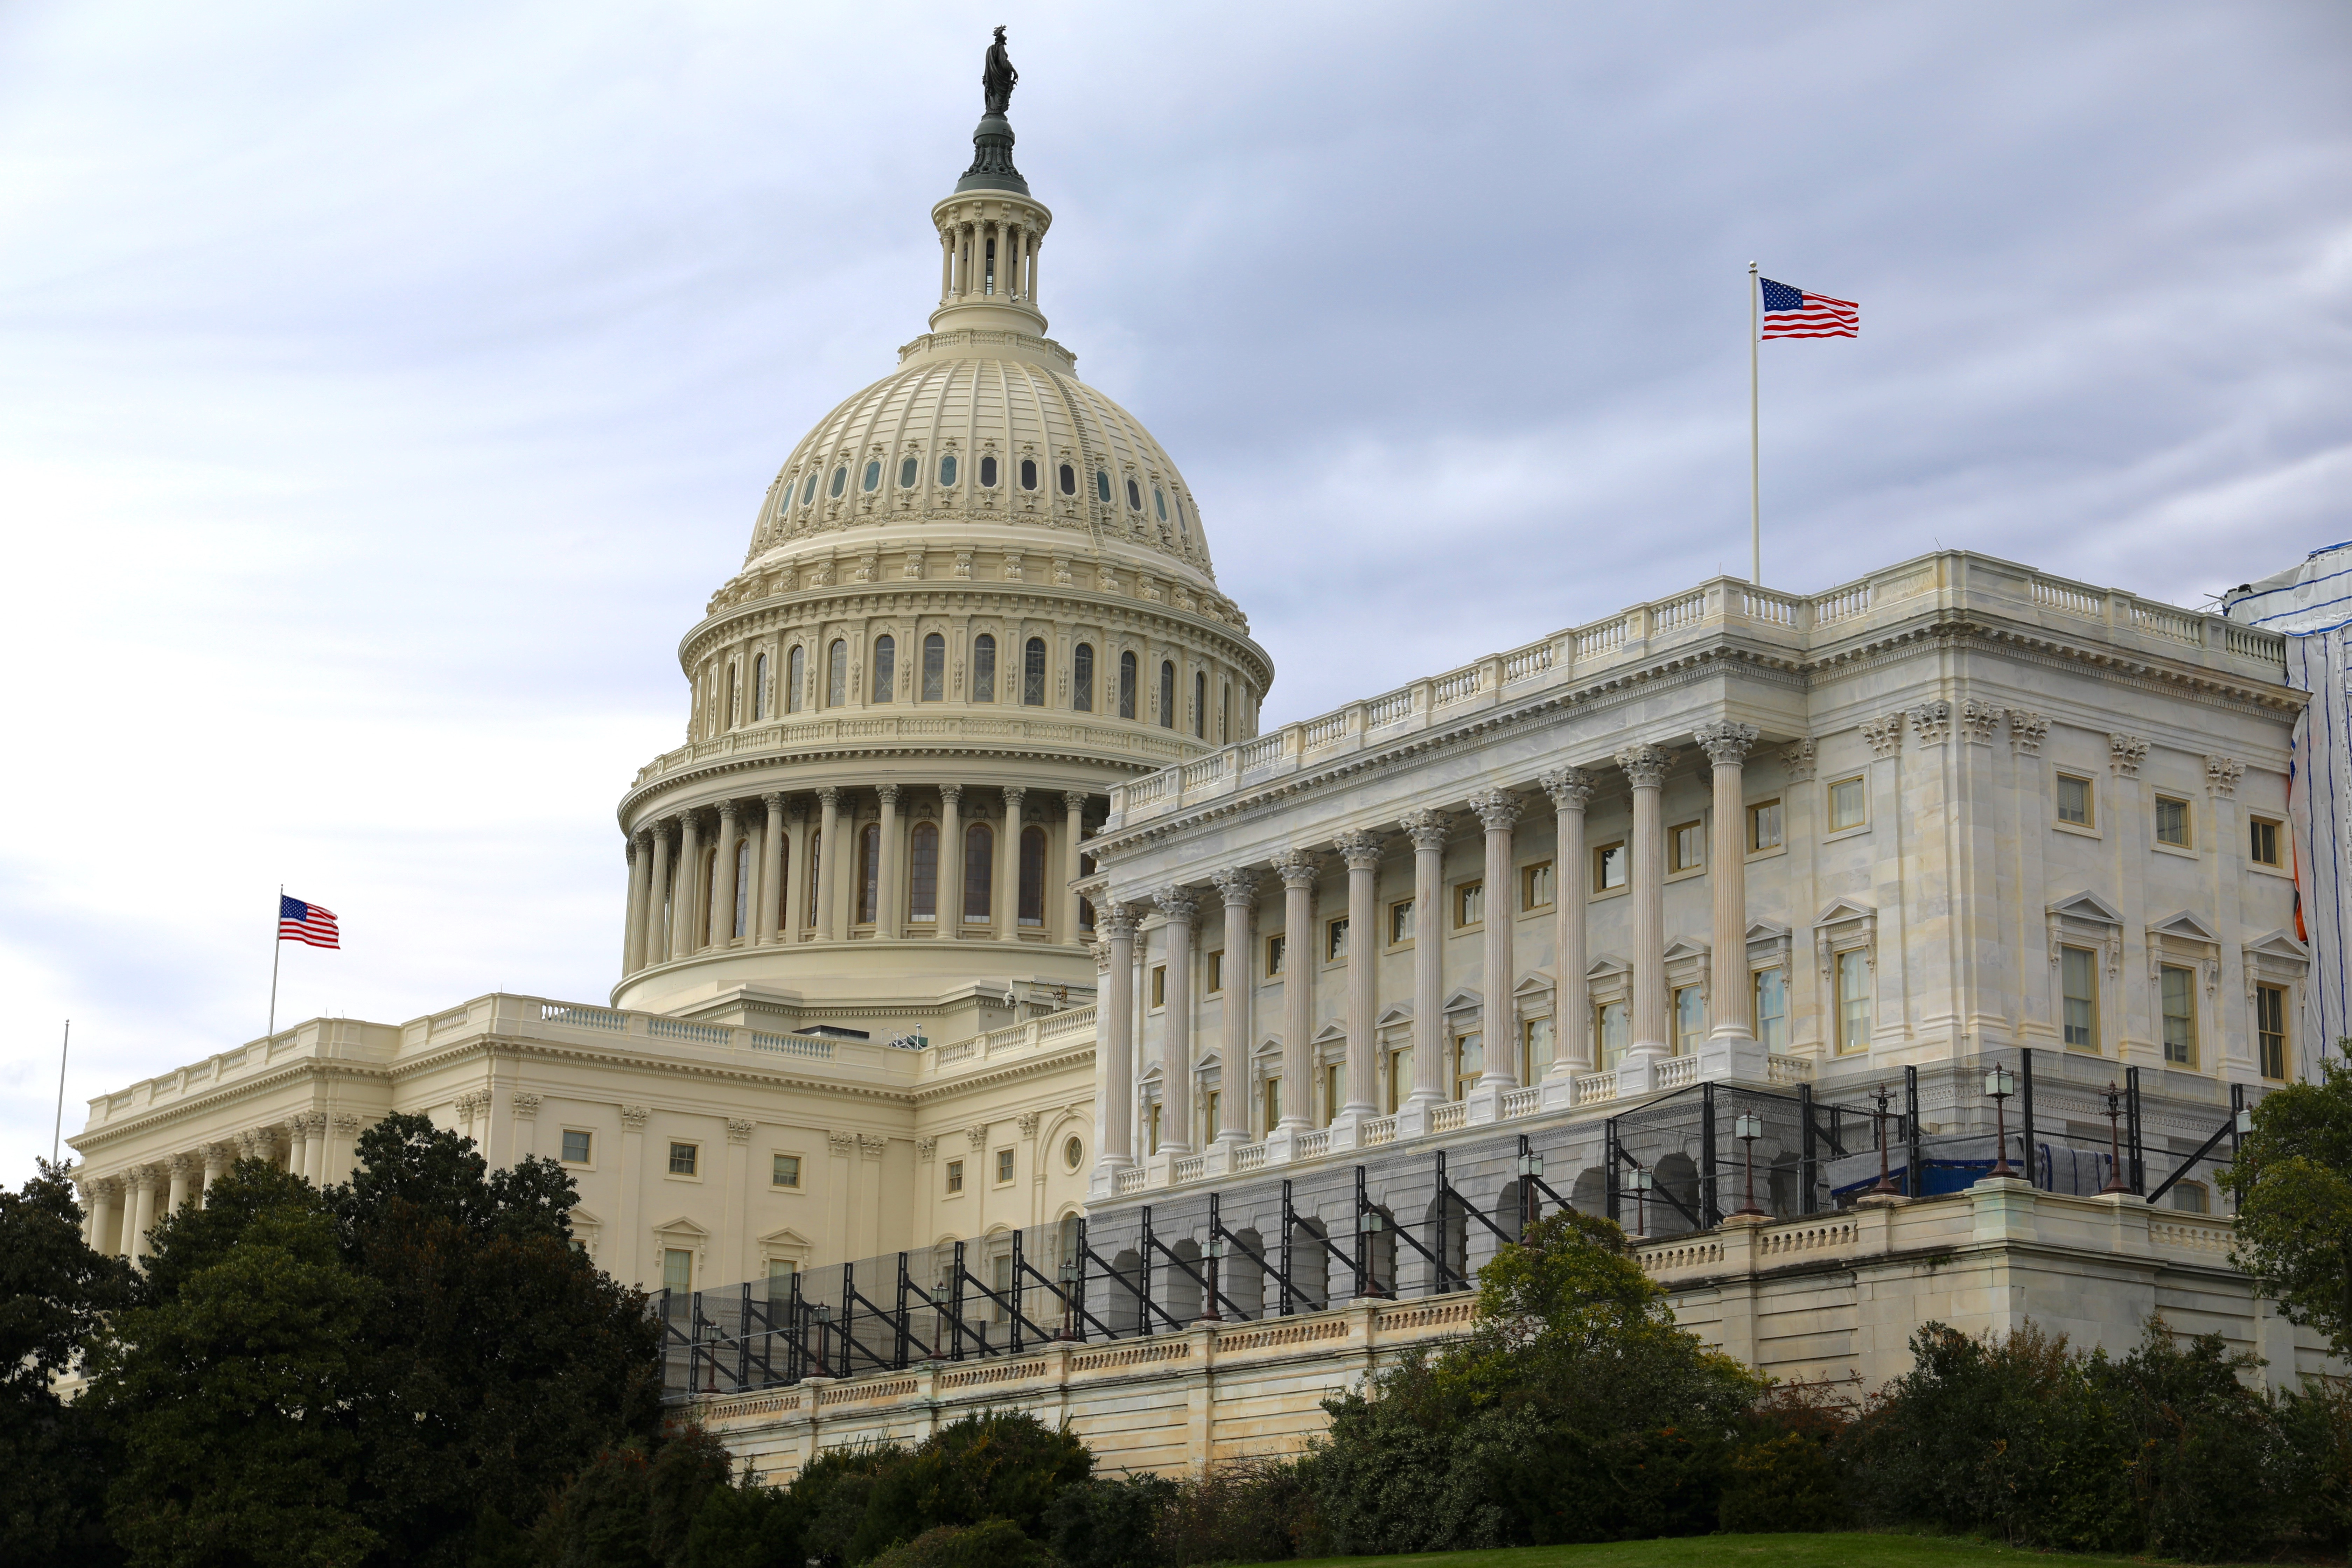 The exterior of the US capitol building photographed from a low angle on a partially cloudy day.